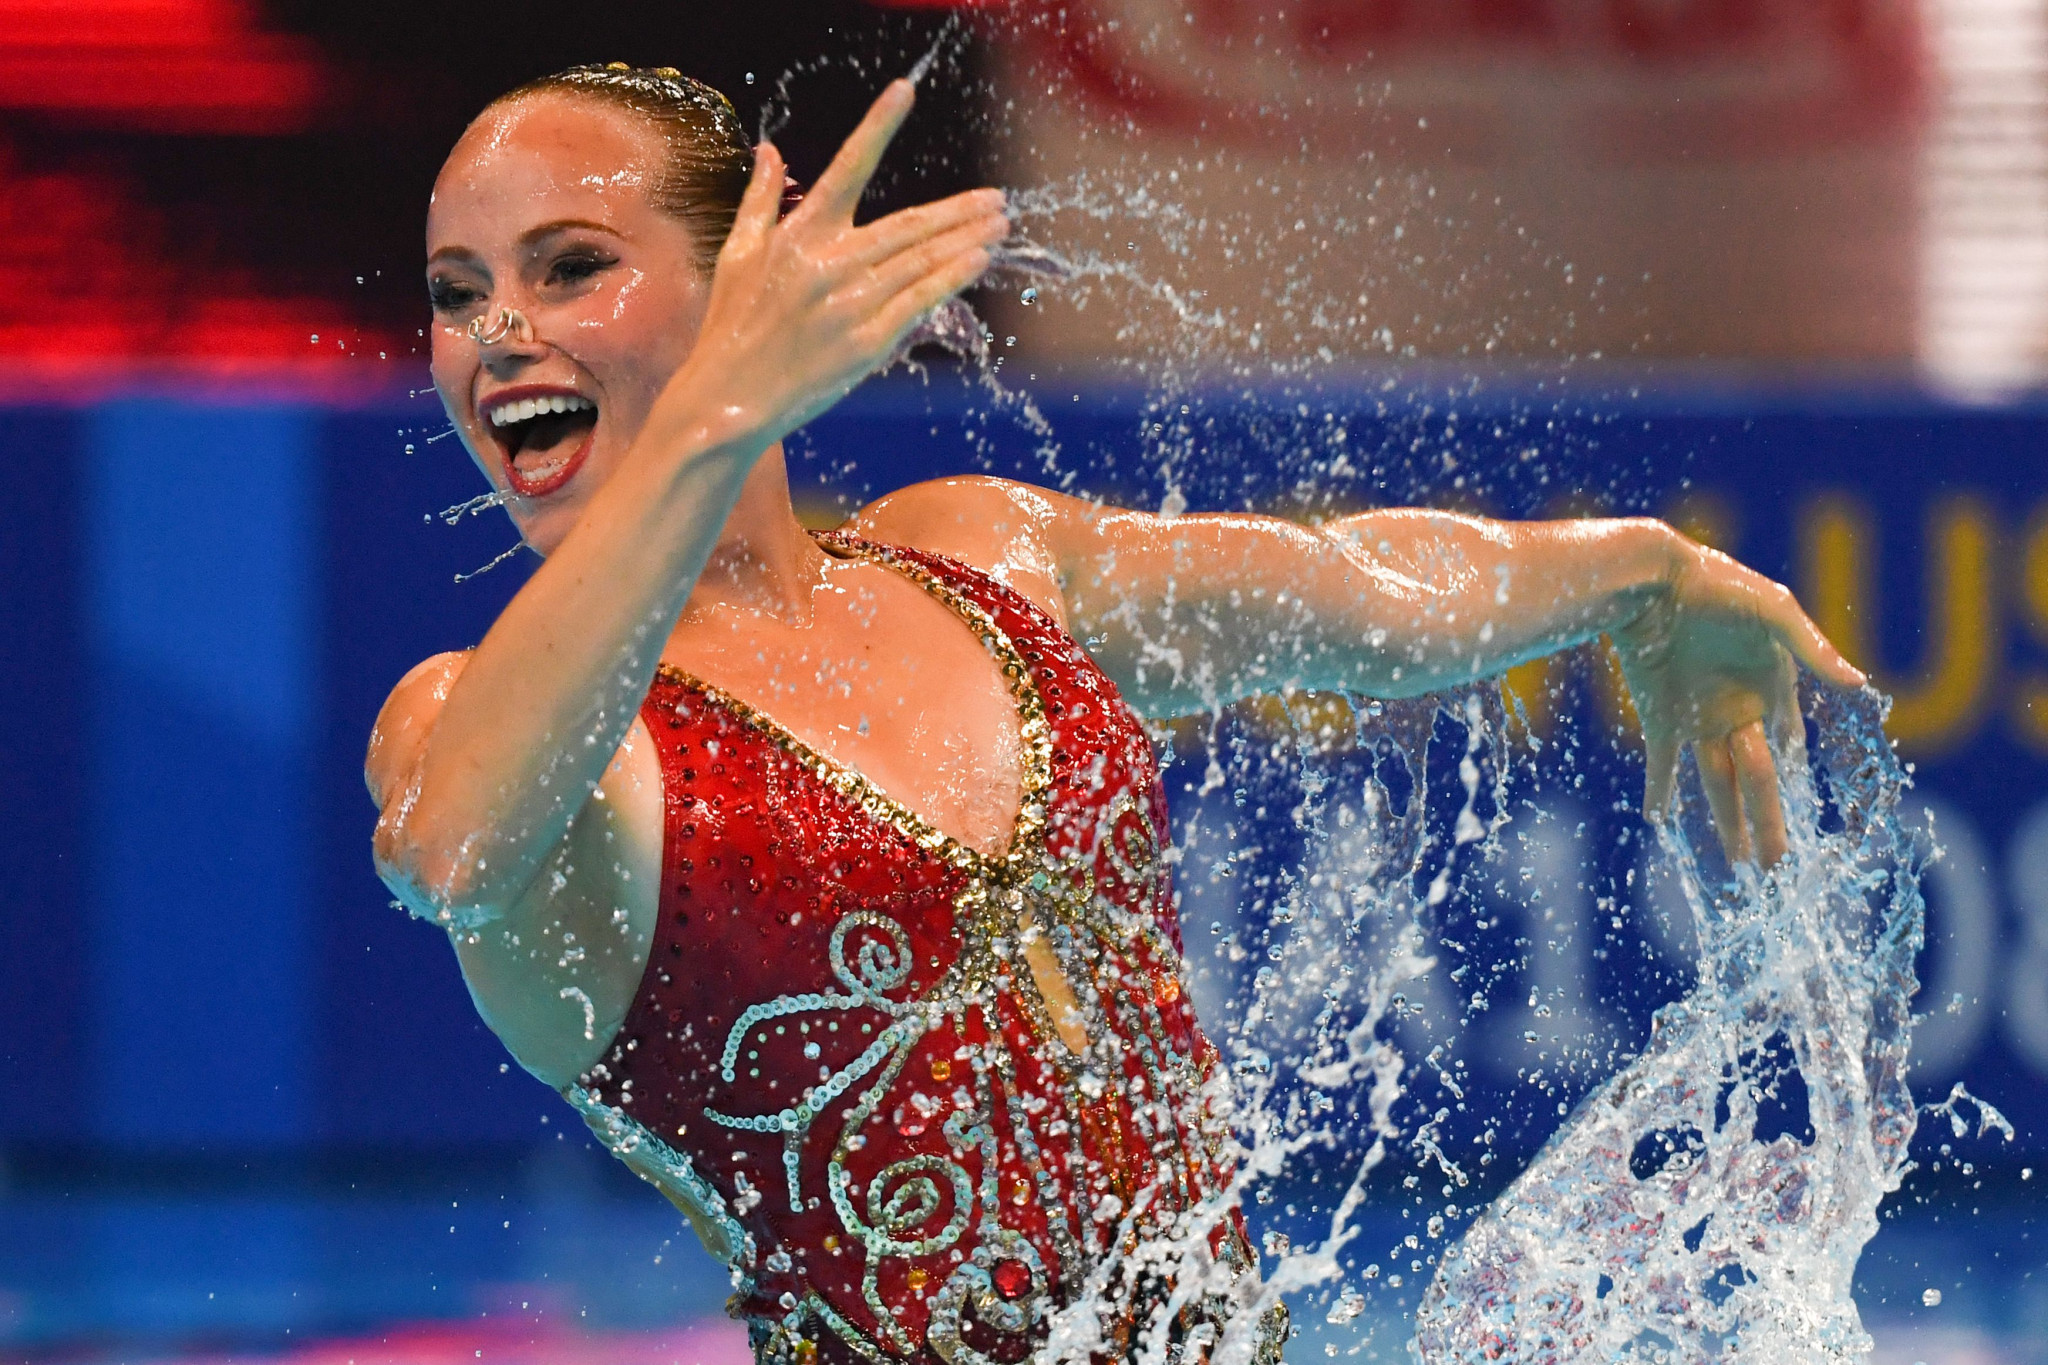 Jacqueline Simoneau won four events in Budapest ©Getty Images